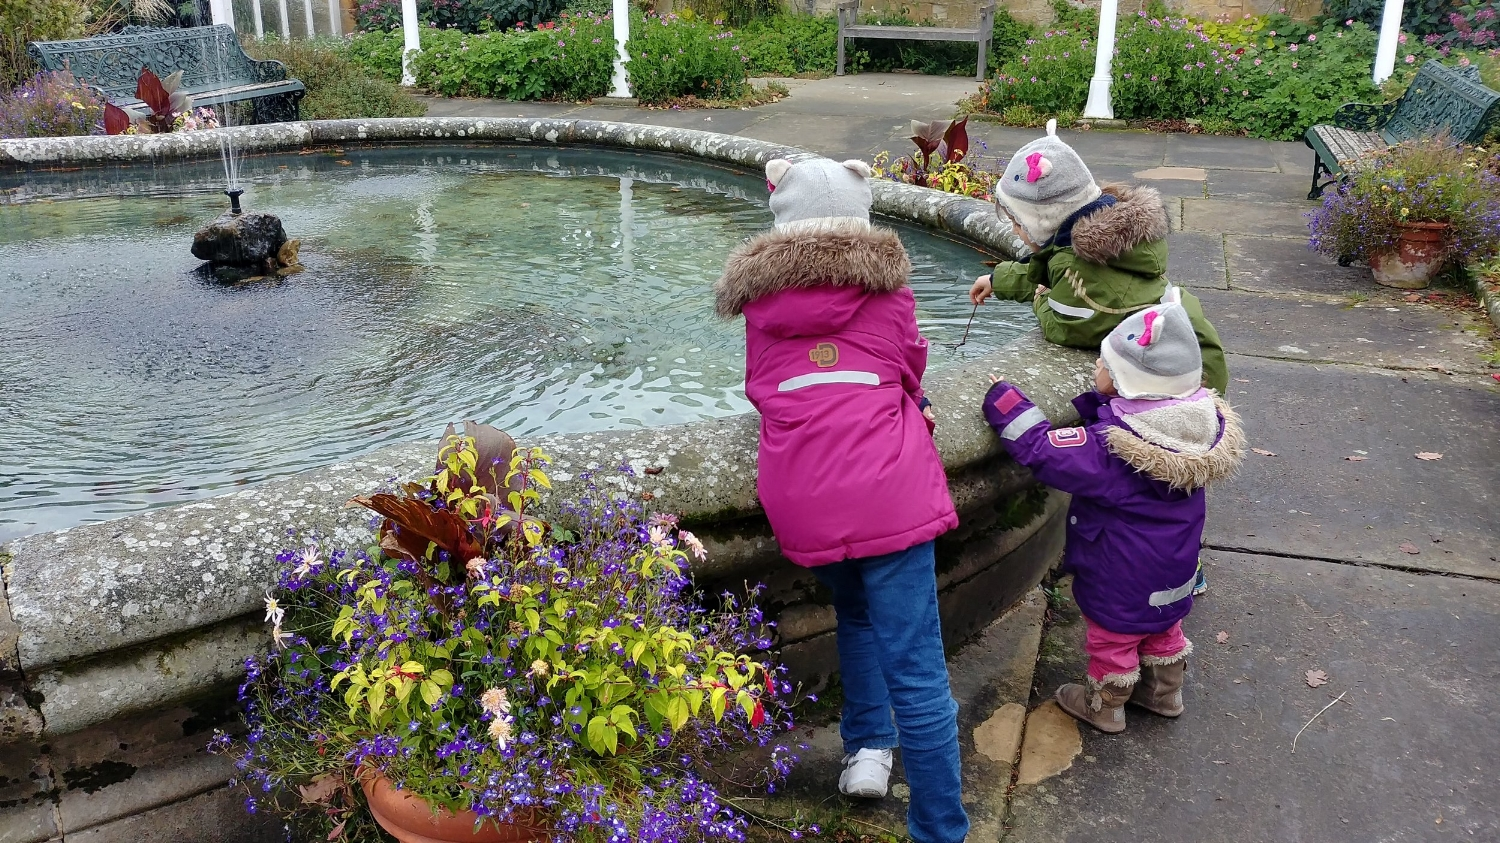 Fishing for coins in the National Trust fountain, little scroungers.